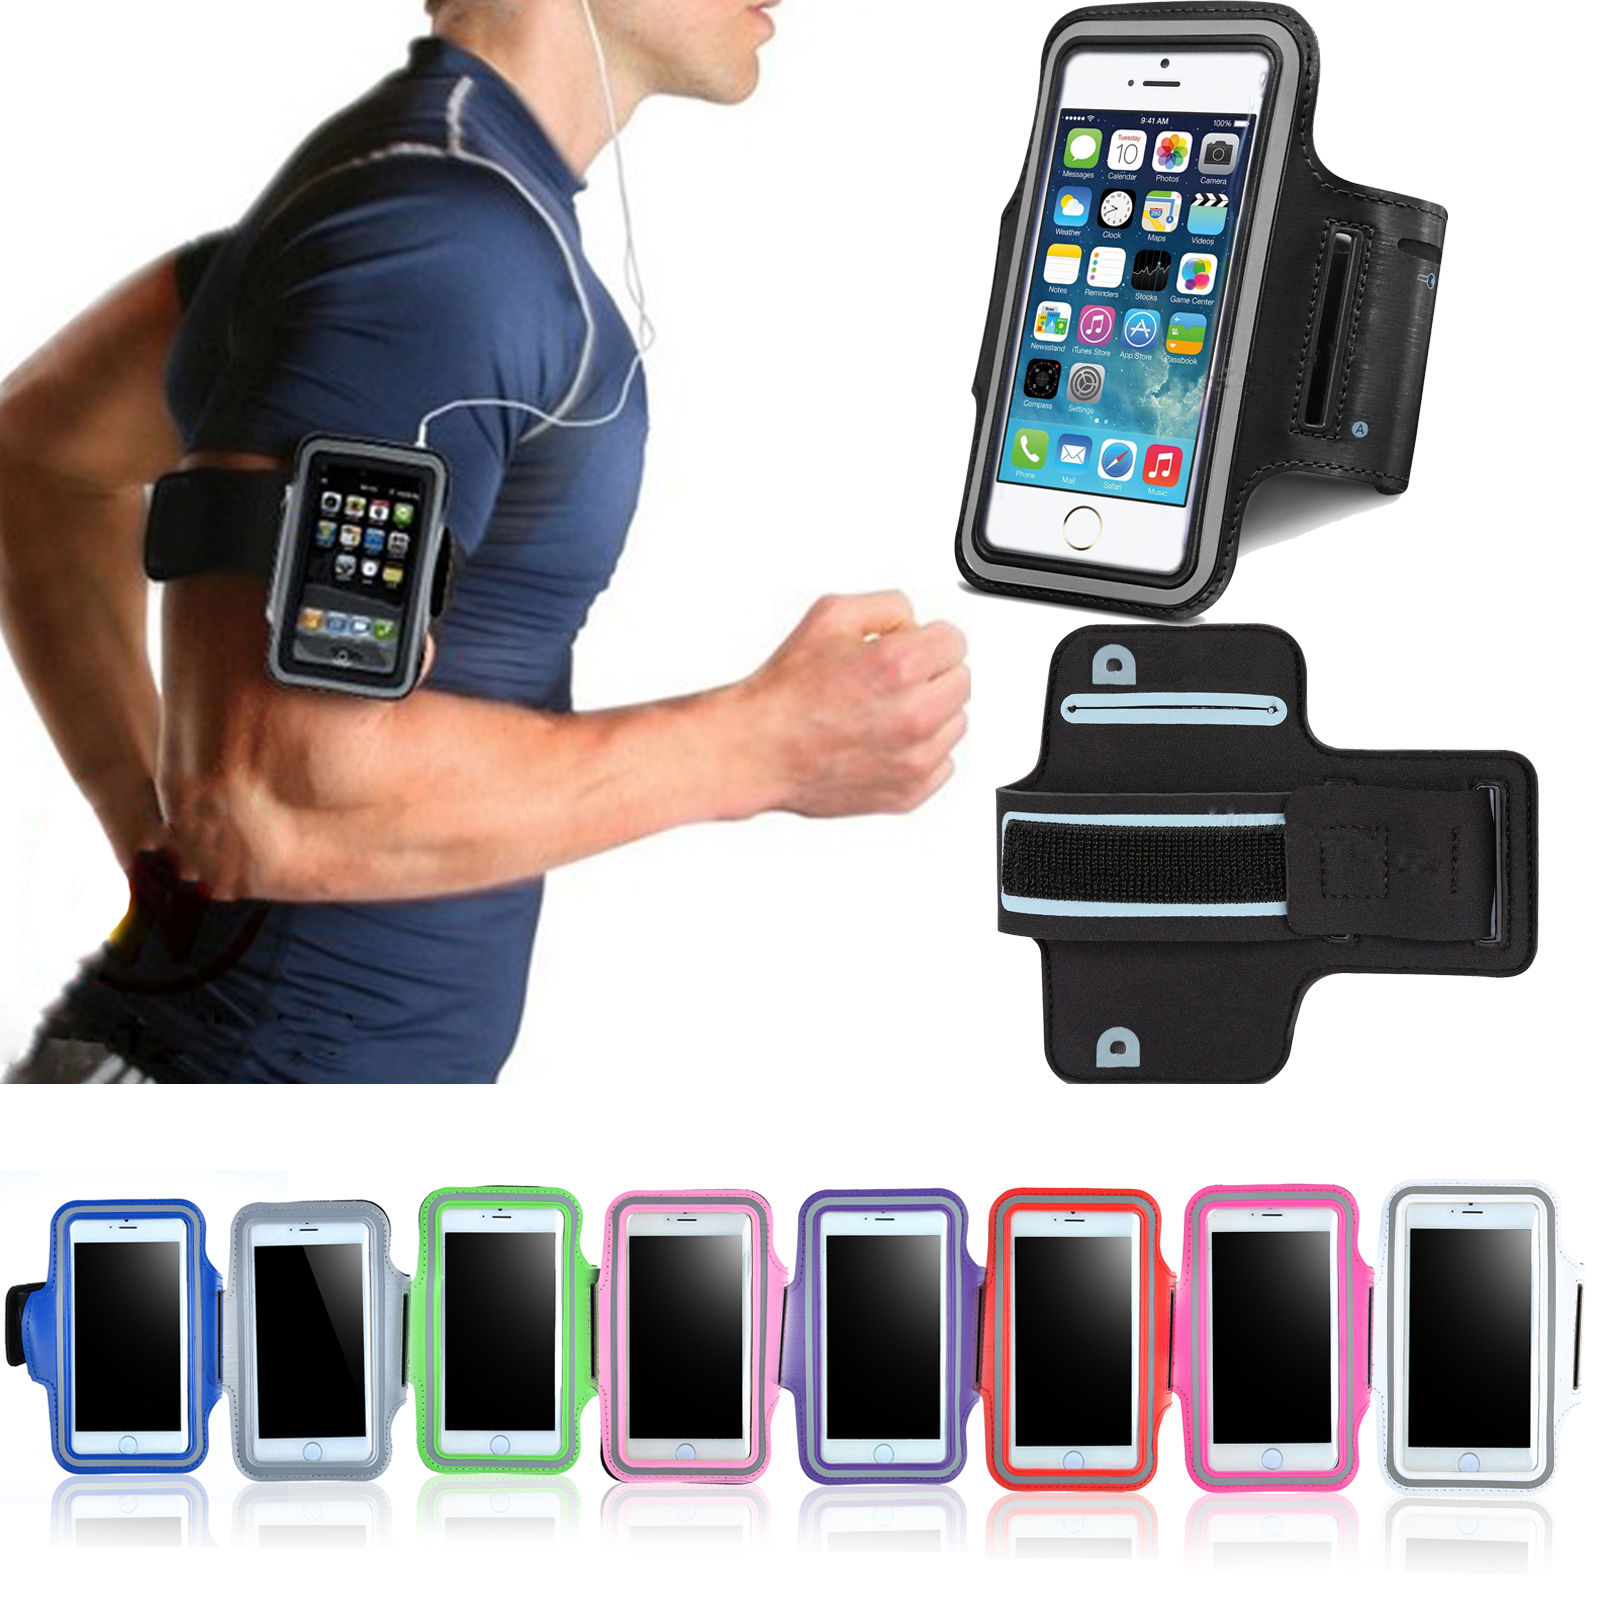 new arrival 6cb73 798a1 Details about Phones Running Jogging Sports Gym Arm Band Mobile Holder Case  Cover Bags